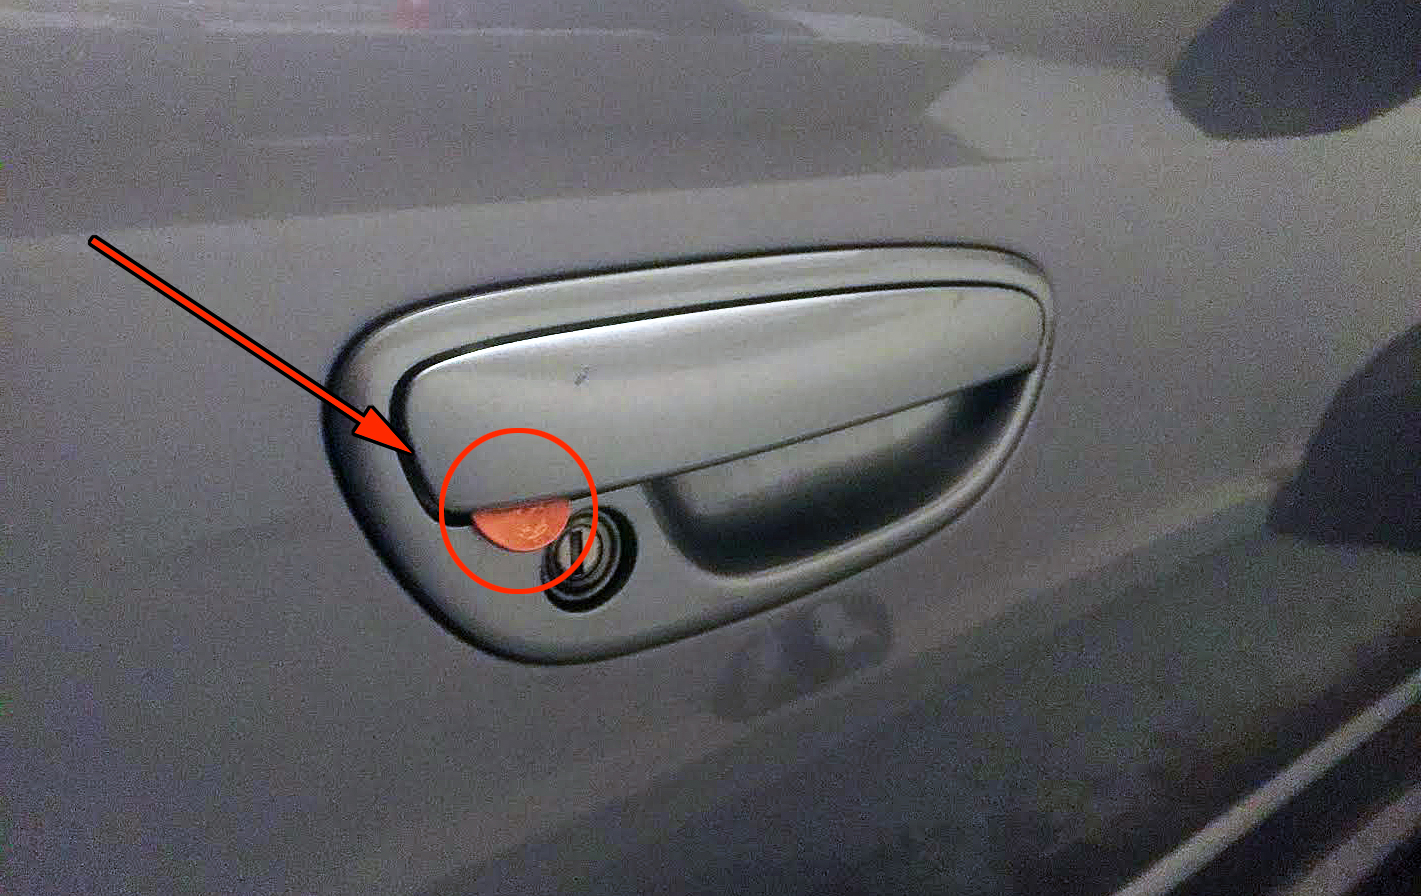 f33f3f3ff3f3f3f33ff3f3 & If You See A Penny Placed In Your Car Door Handle THIS Is What It ...